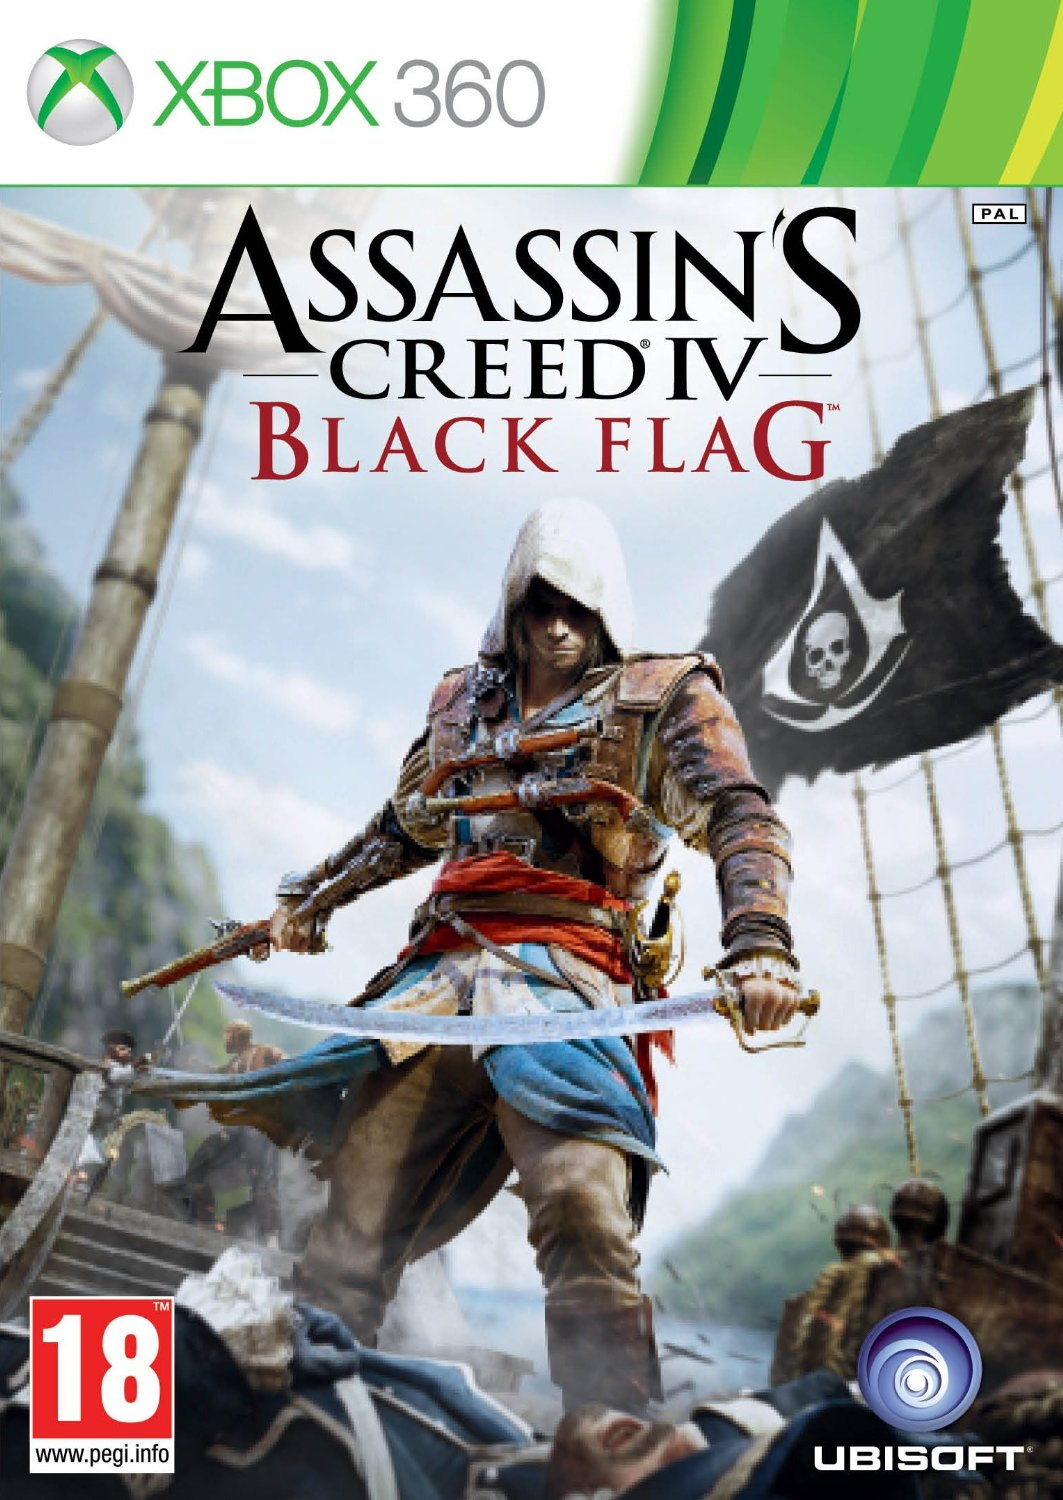 Assassin's Creed IV: Black Flag - [Xbox 360]